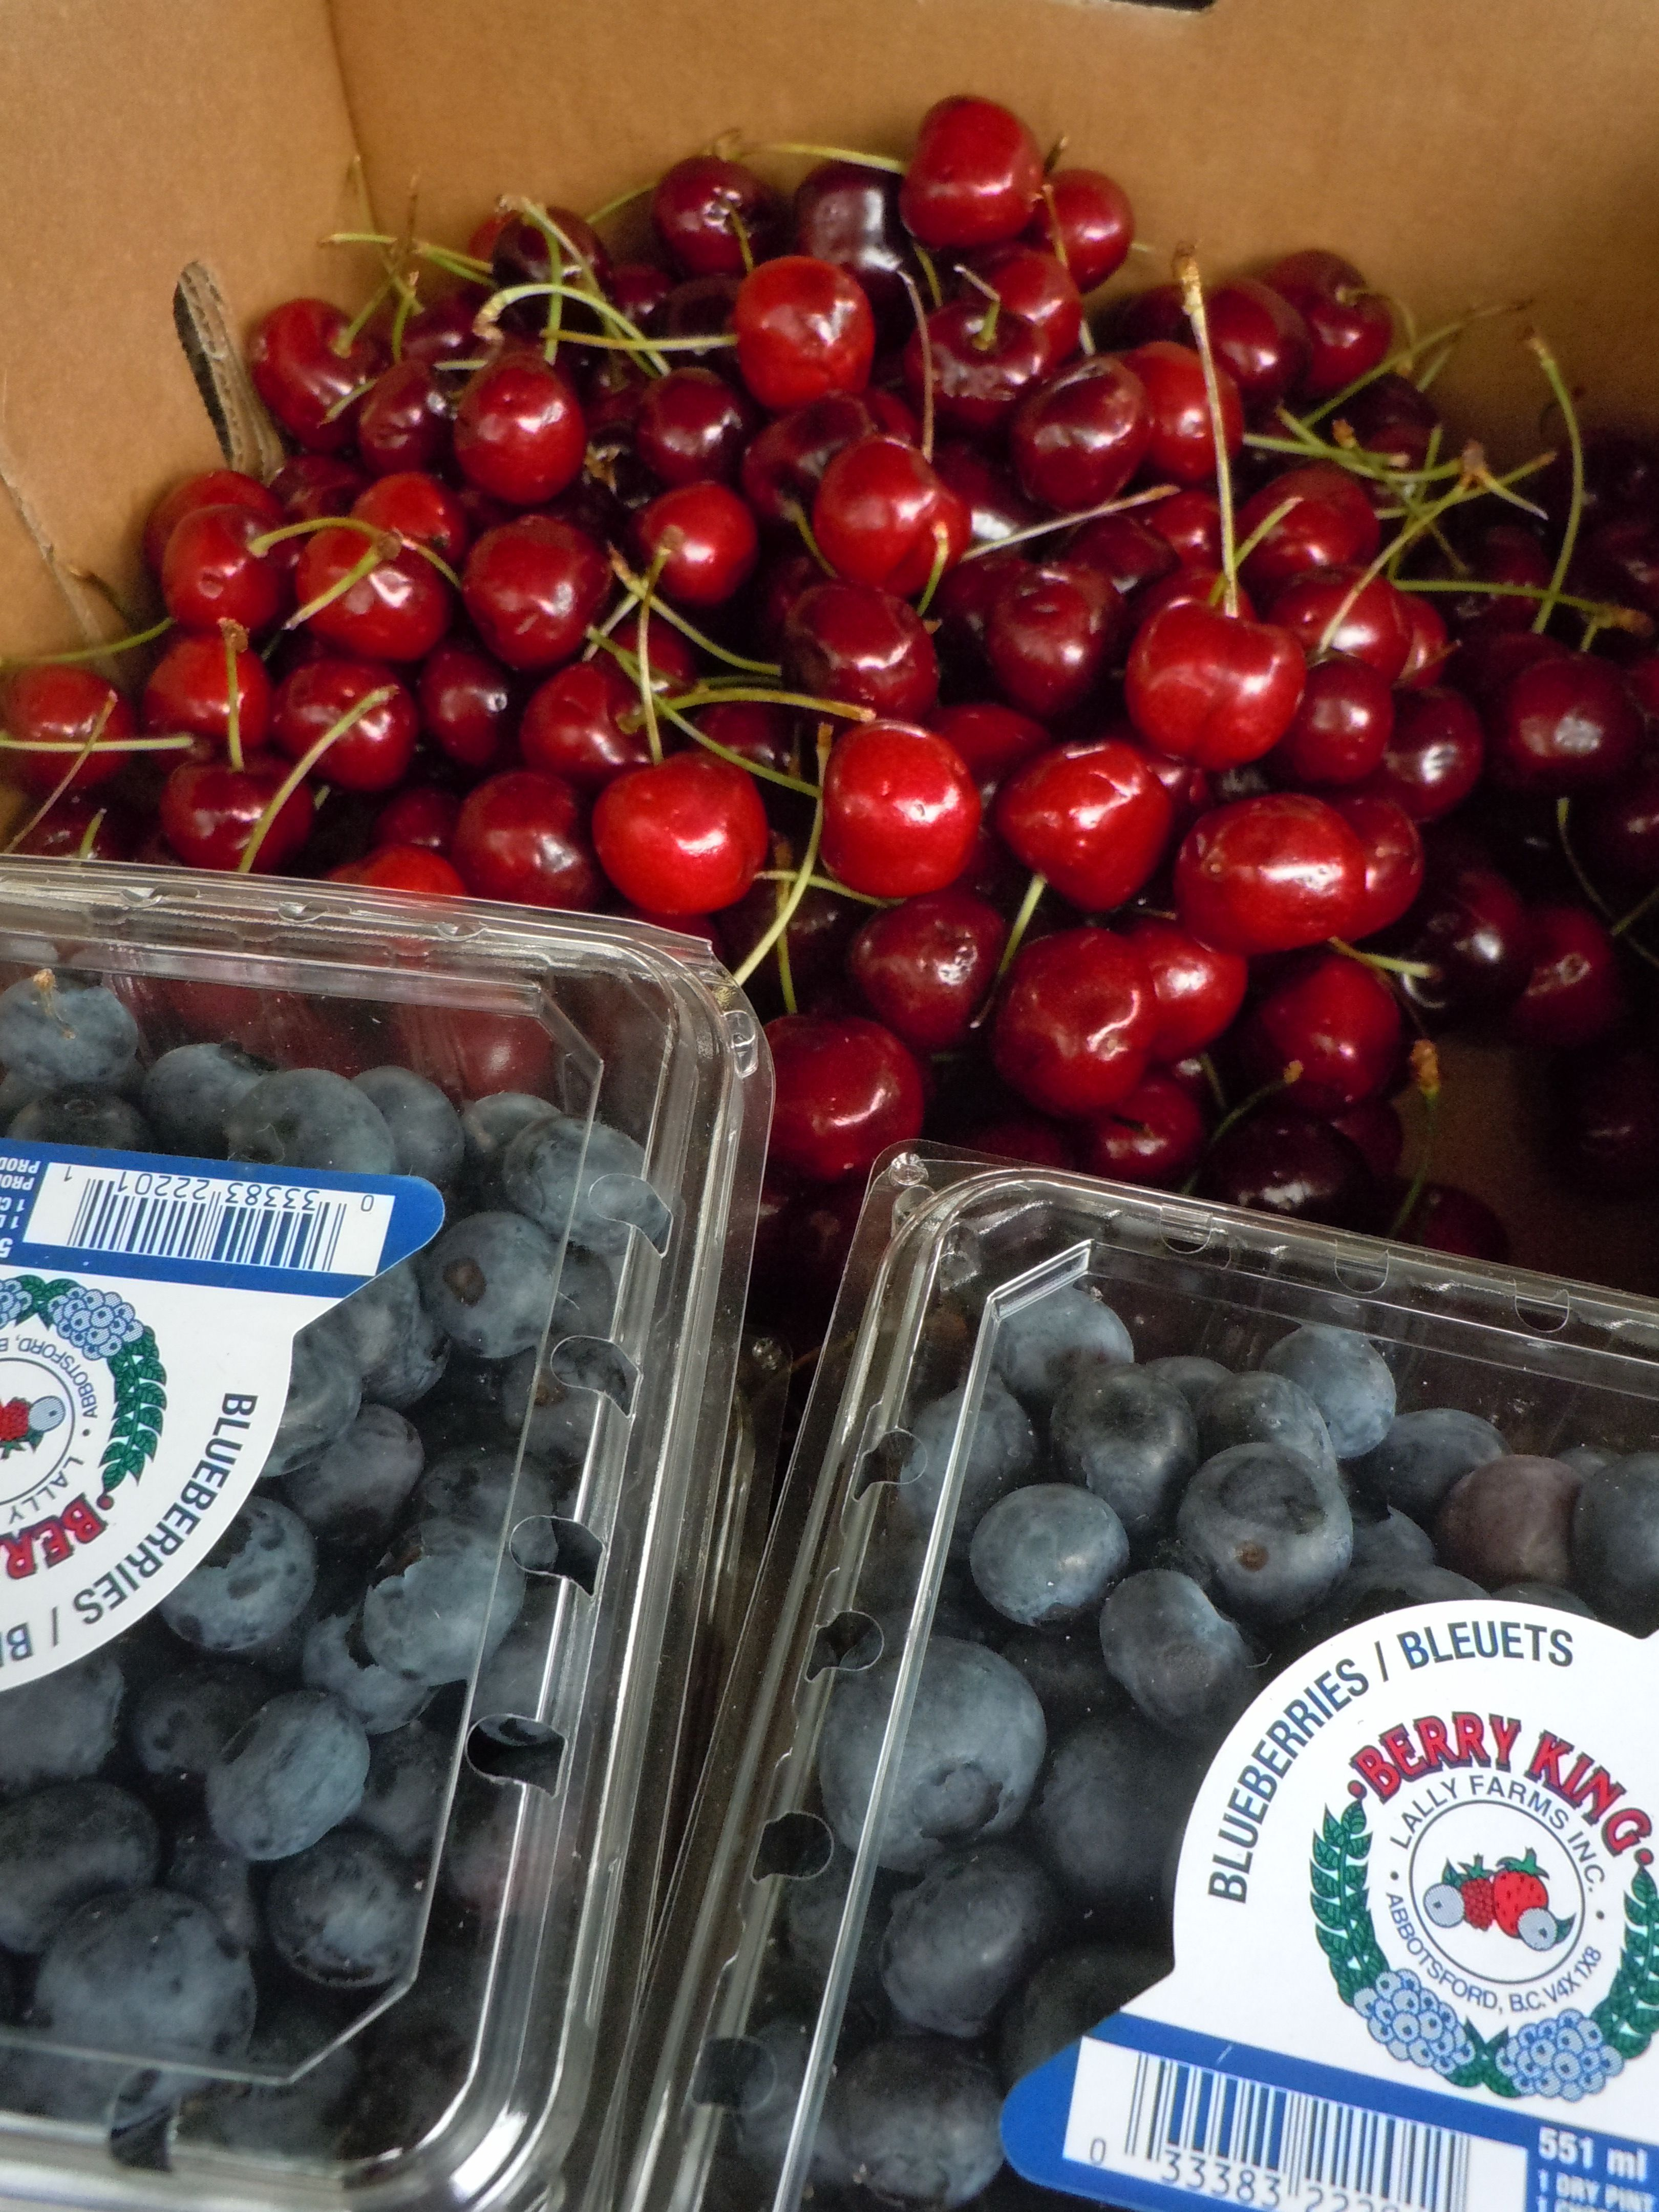 Blueberries and cherries at the maitland farmers